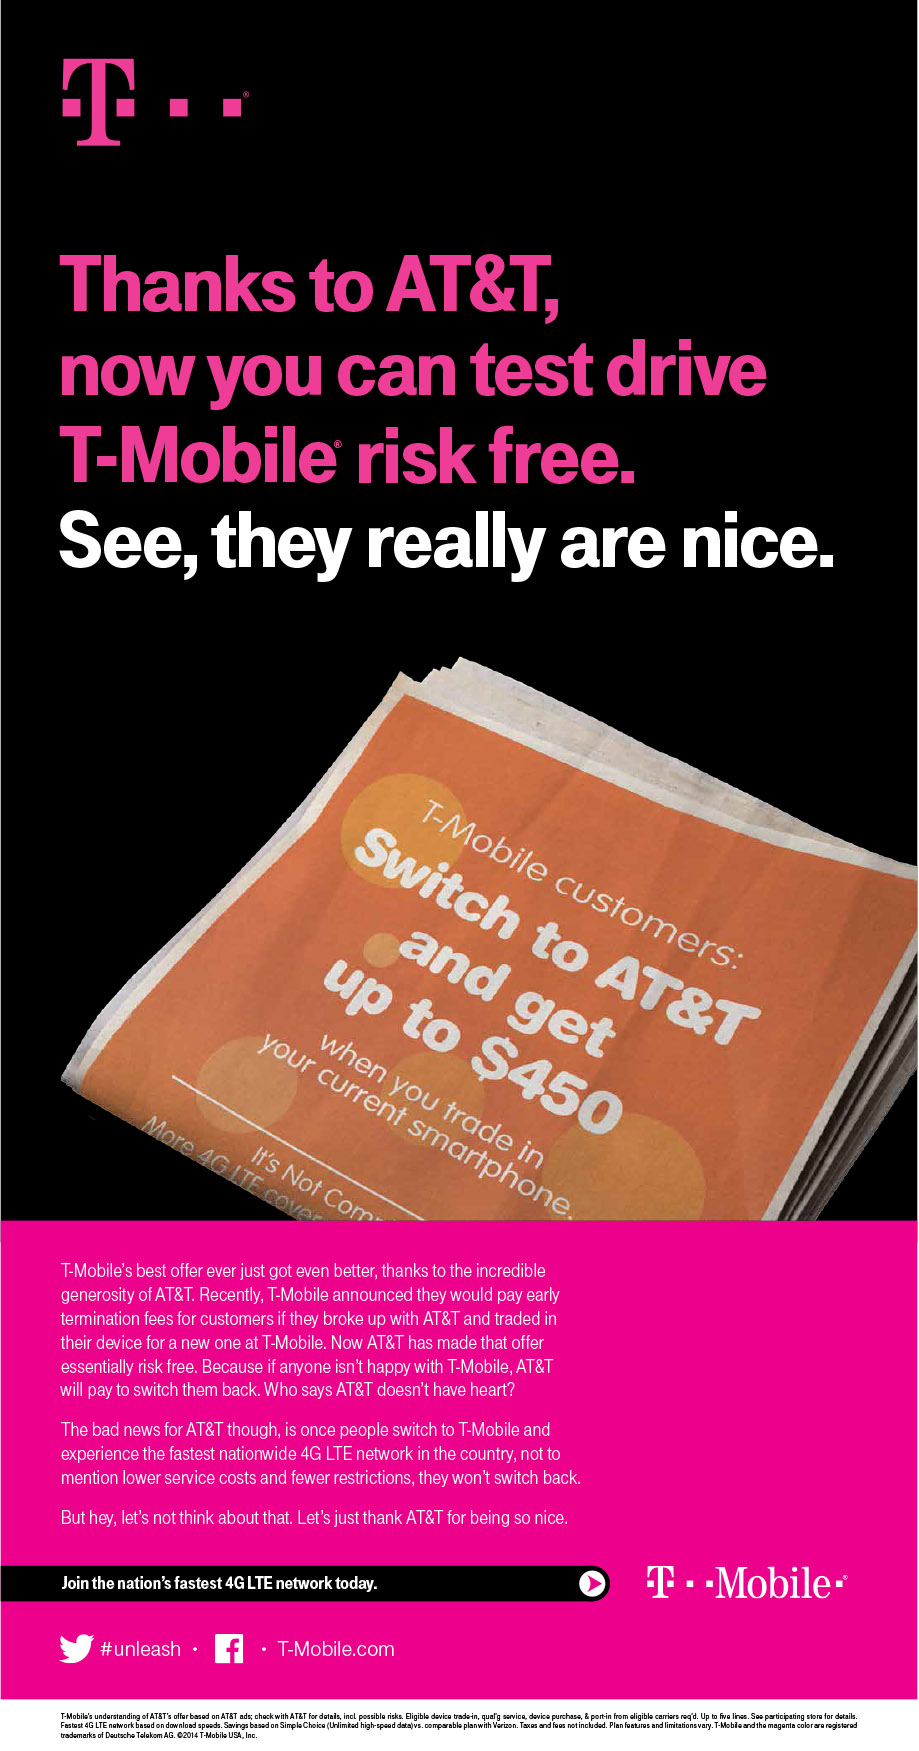 At&t Quote Tmobile's Offthewall Press Release Likens At&t Ceo To Darth Vader